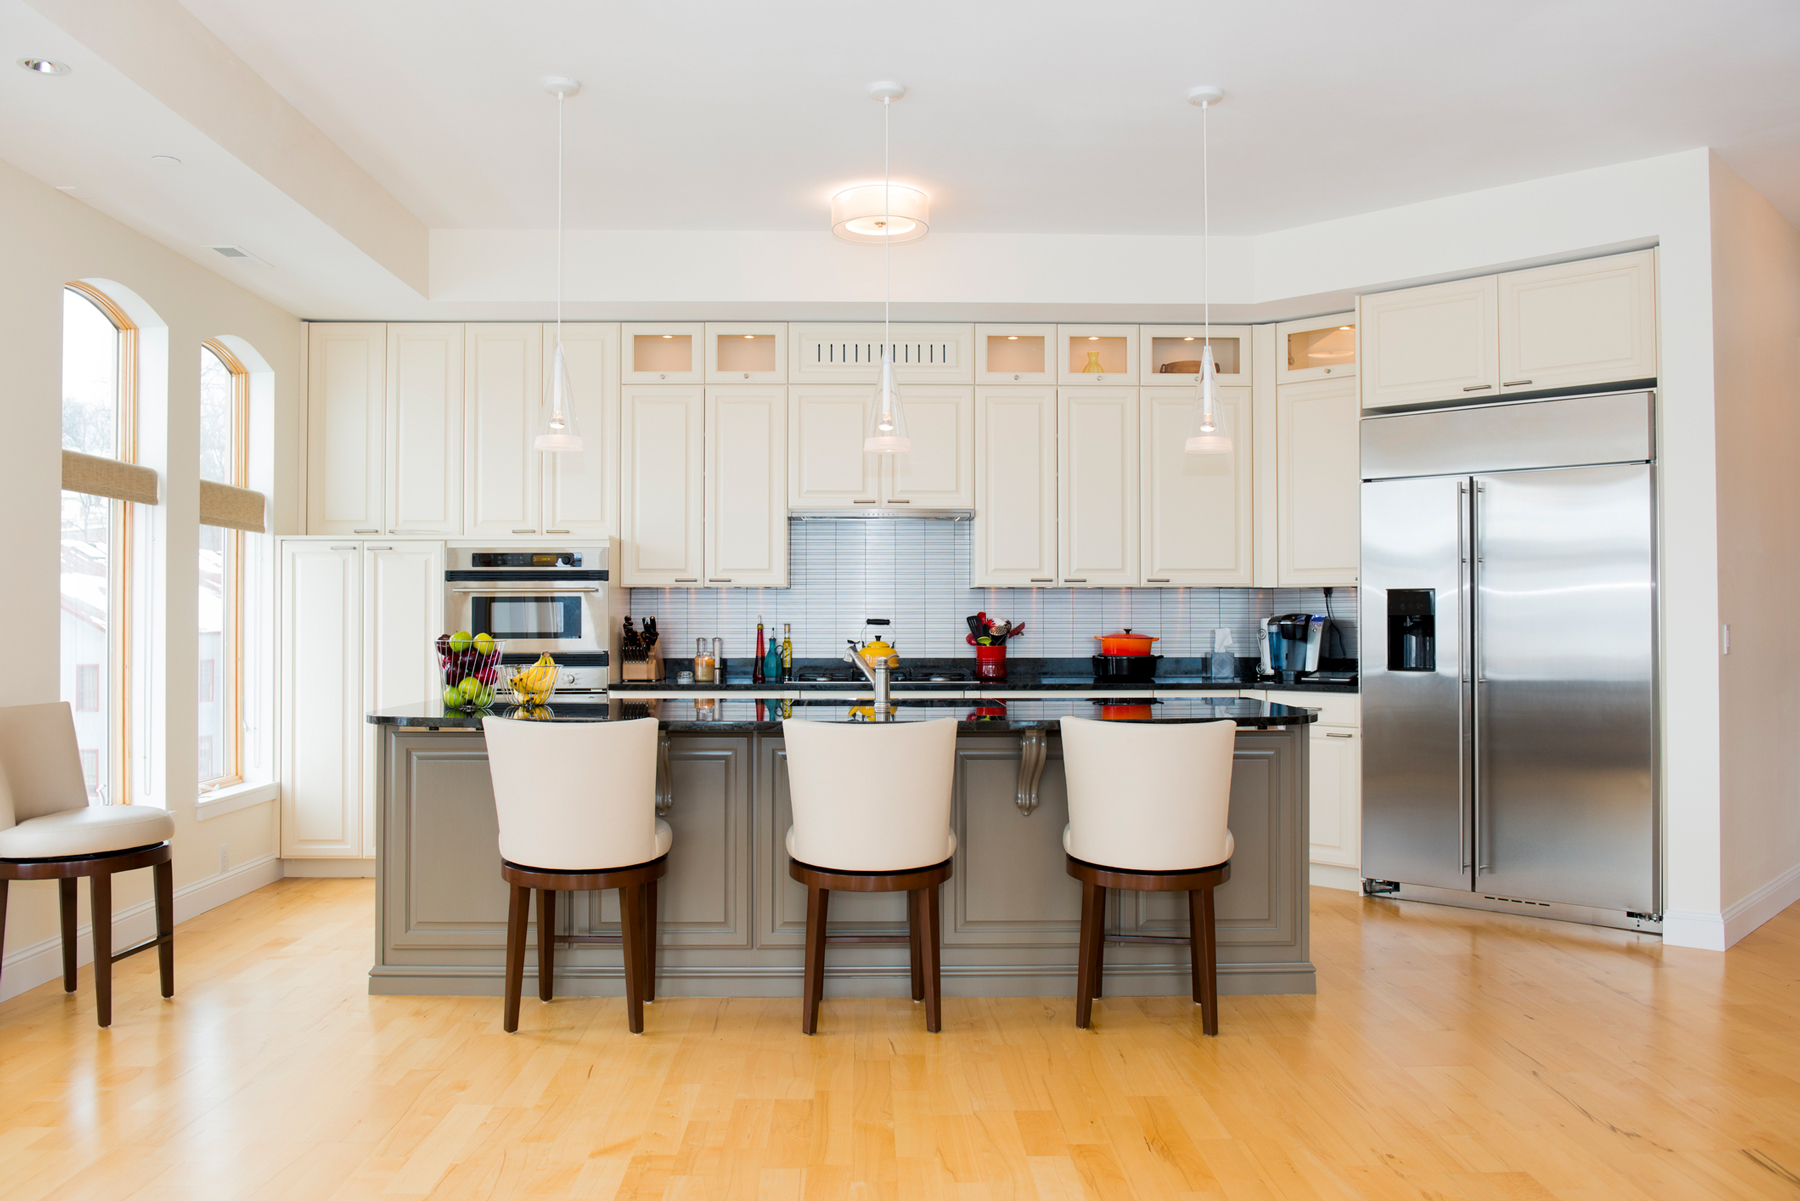 Refinishing or Replacing kitchen cabinets white and gray kitchen